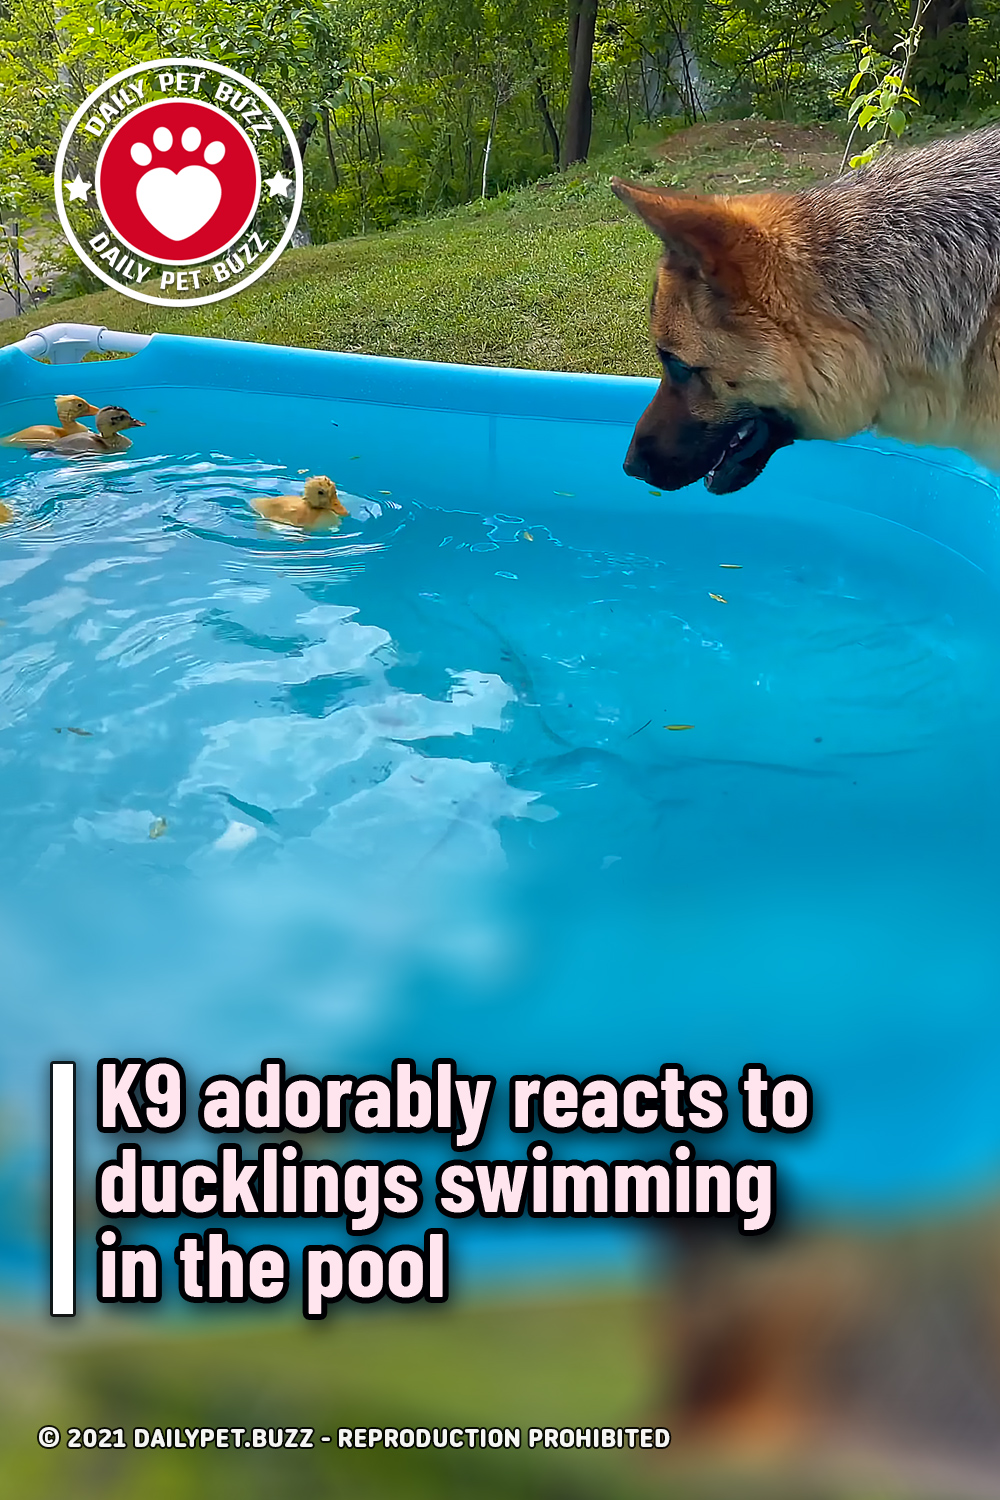 K9 adorably reacts to ducklings swimming in the pool